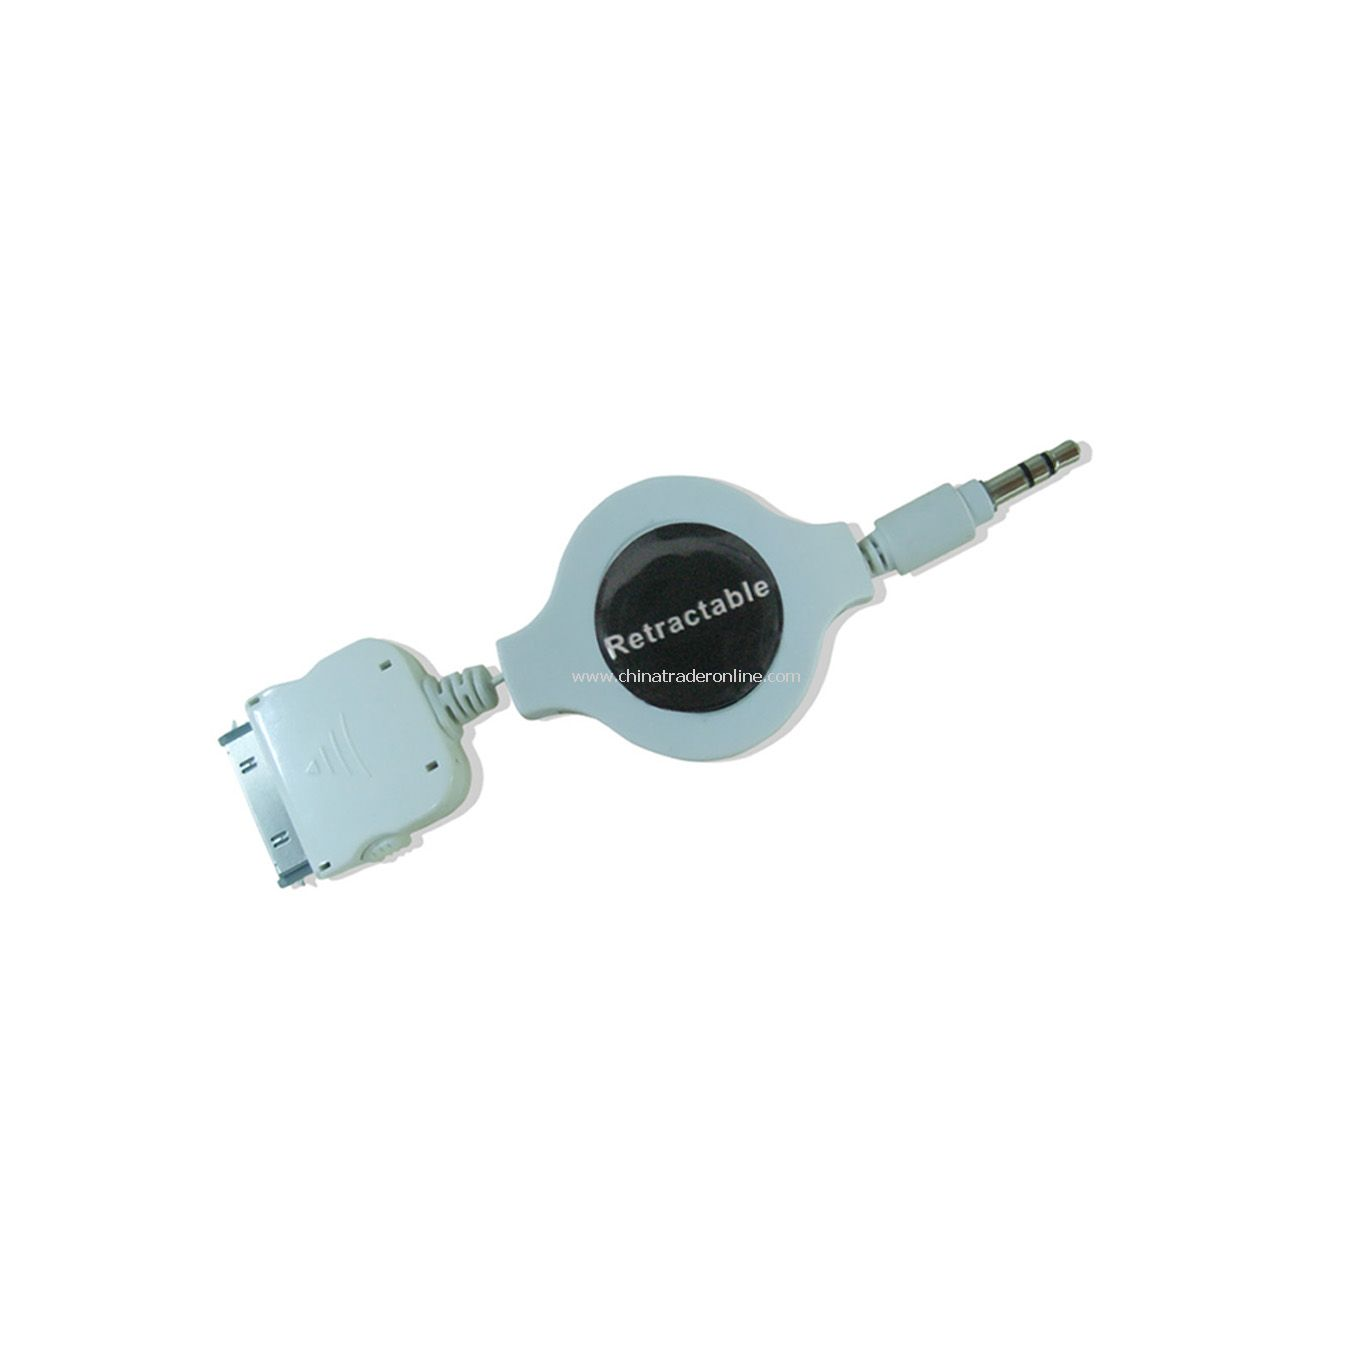 Retractable Audio Cable for iPod